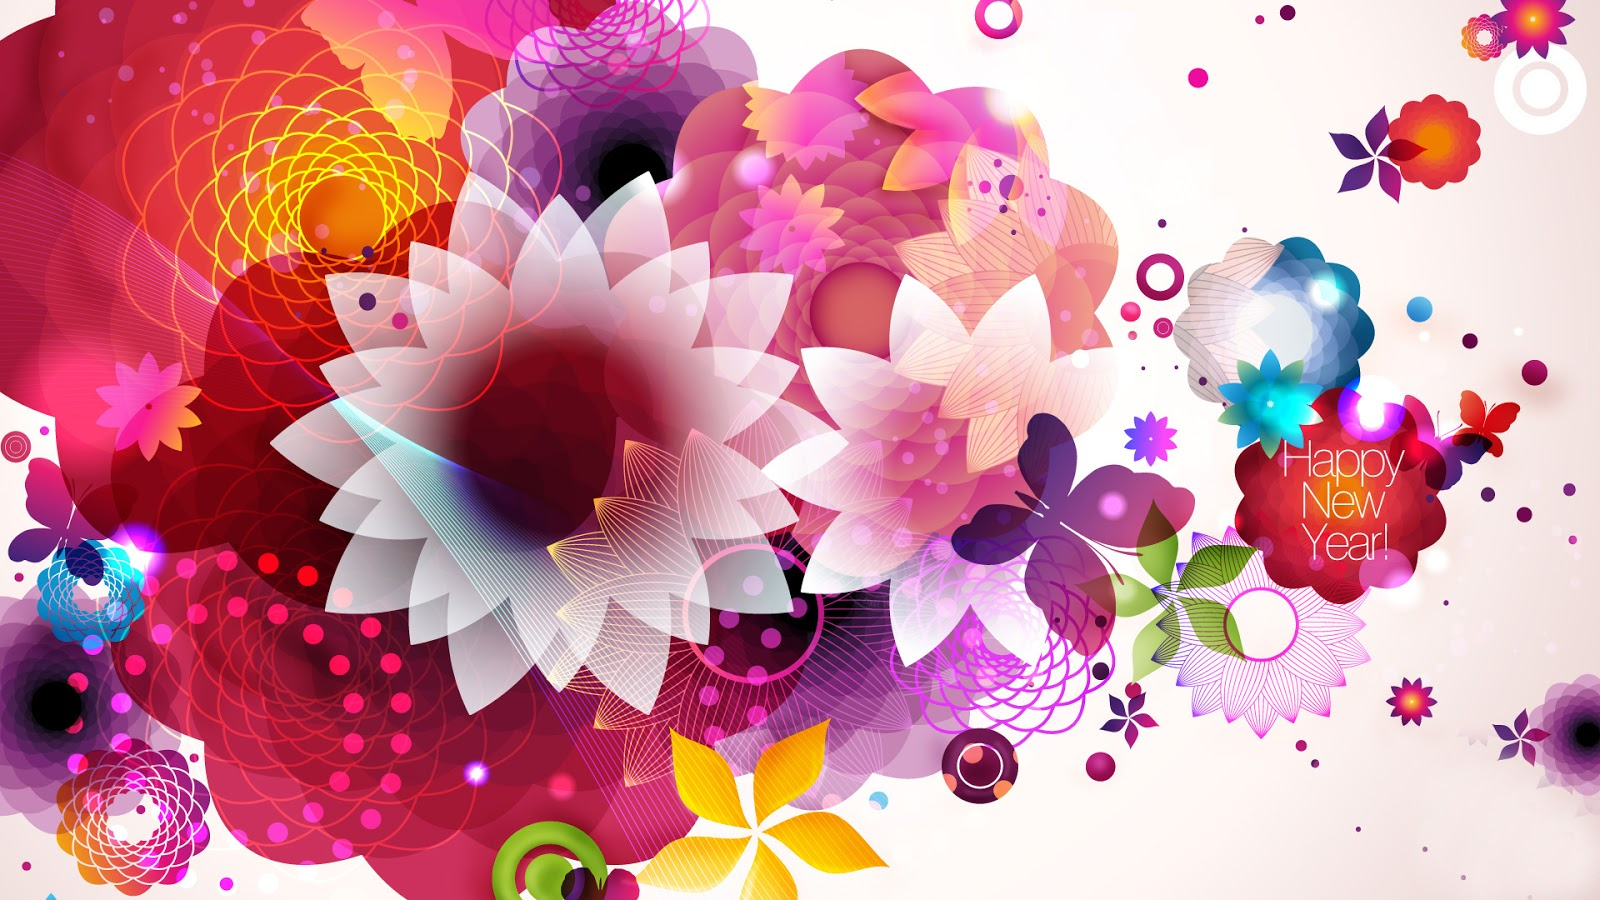 Happy New Year 2016 Flowers Images  Wallpapers   Wallpaper Happy New     Happy new year images